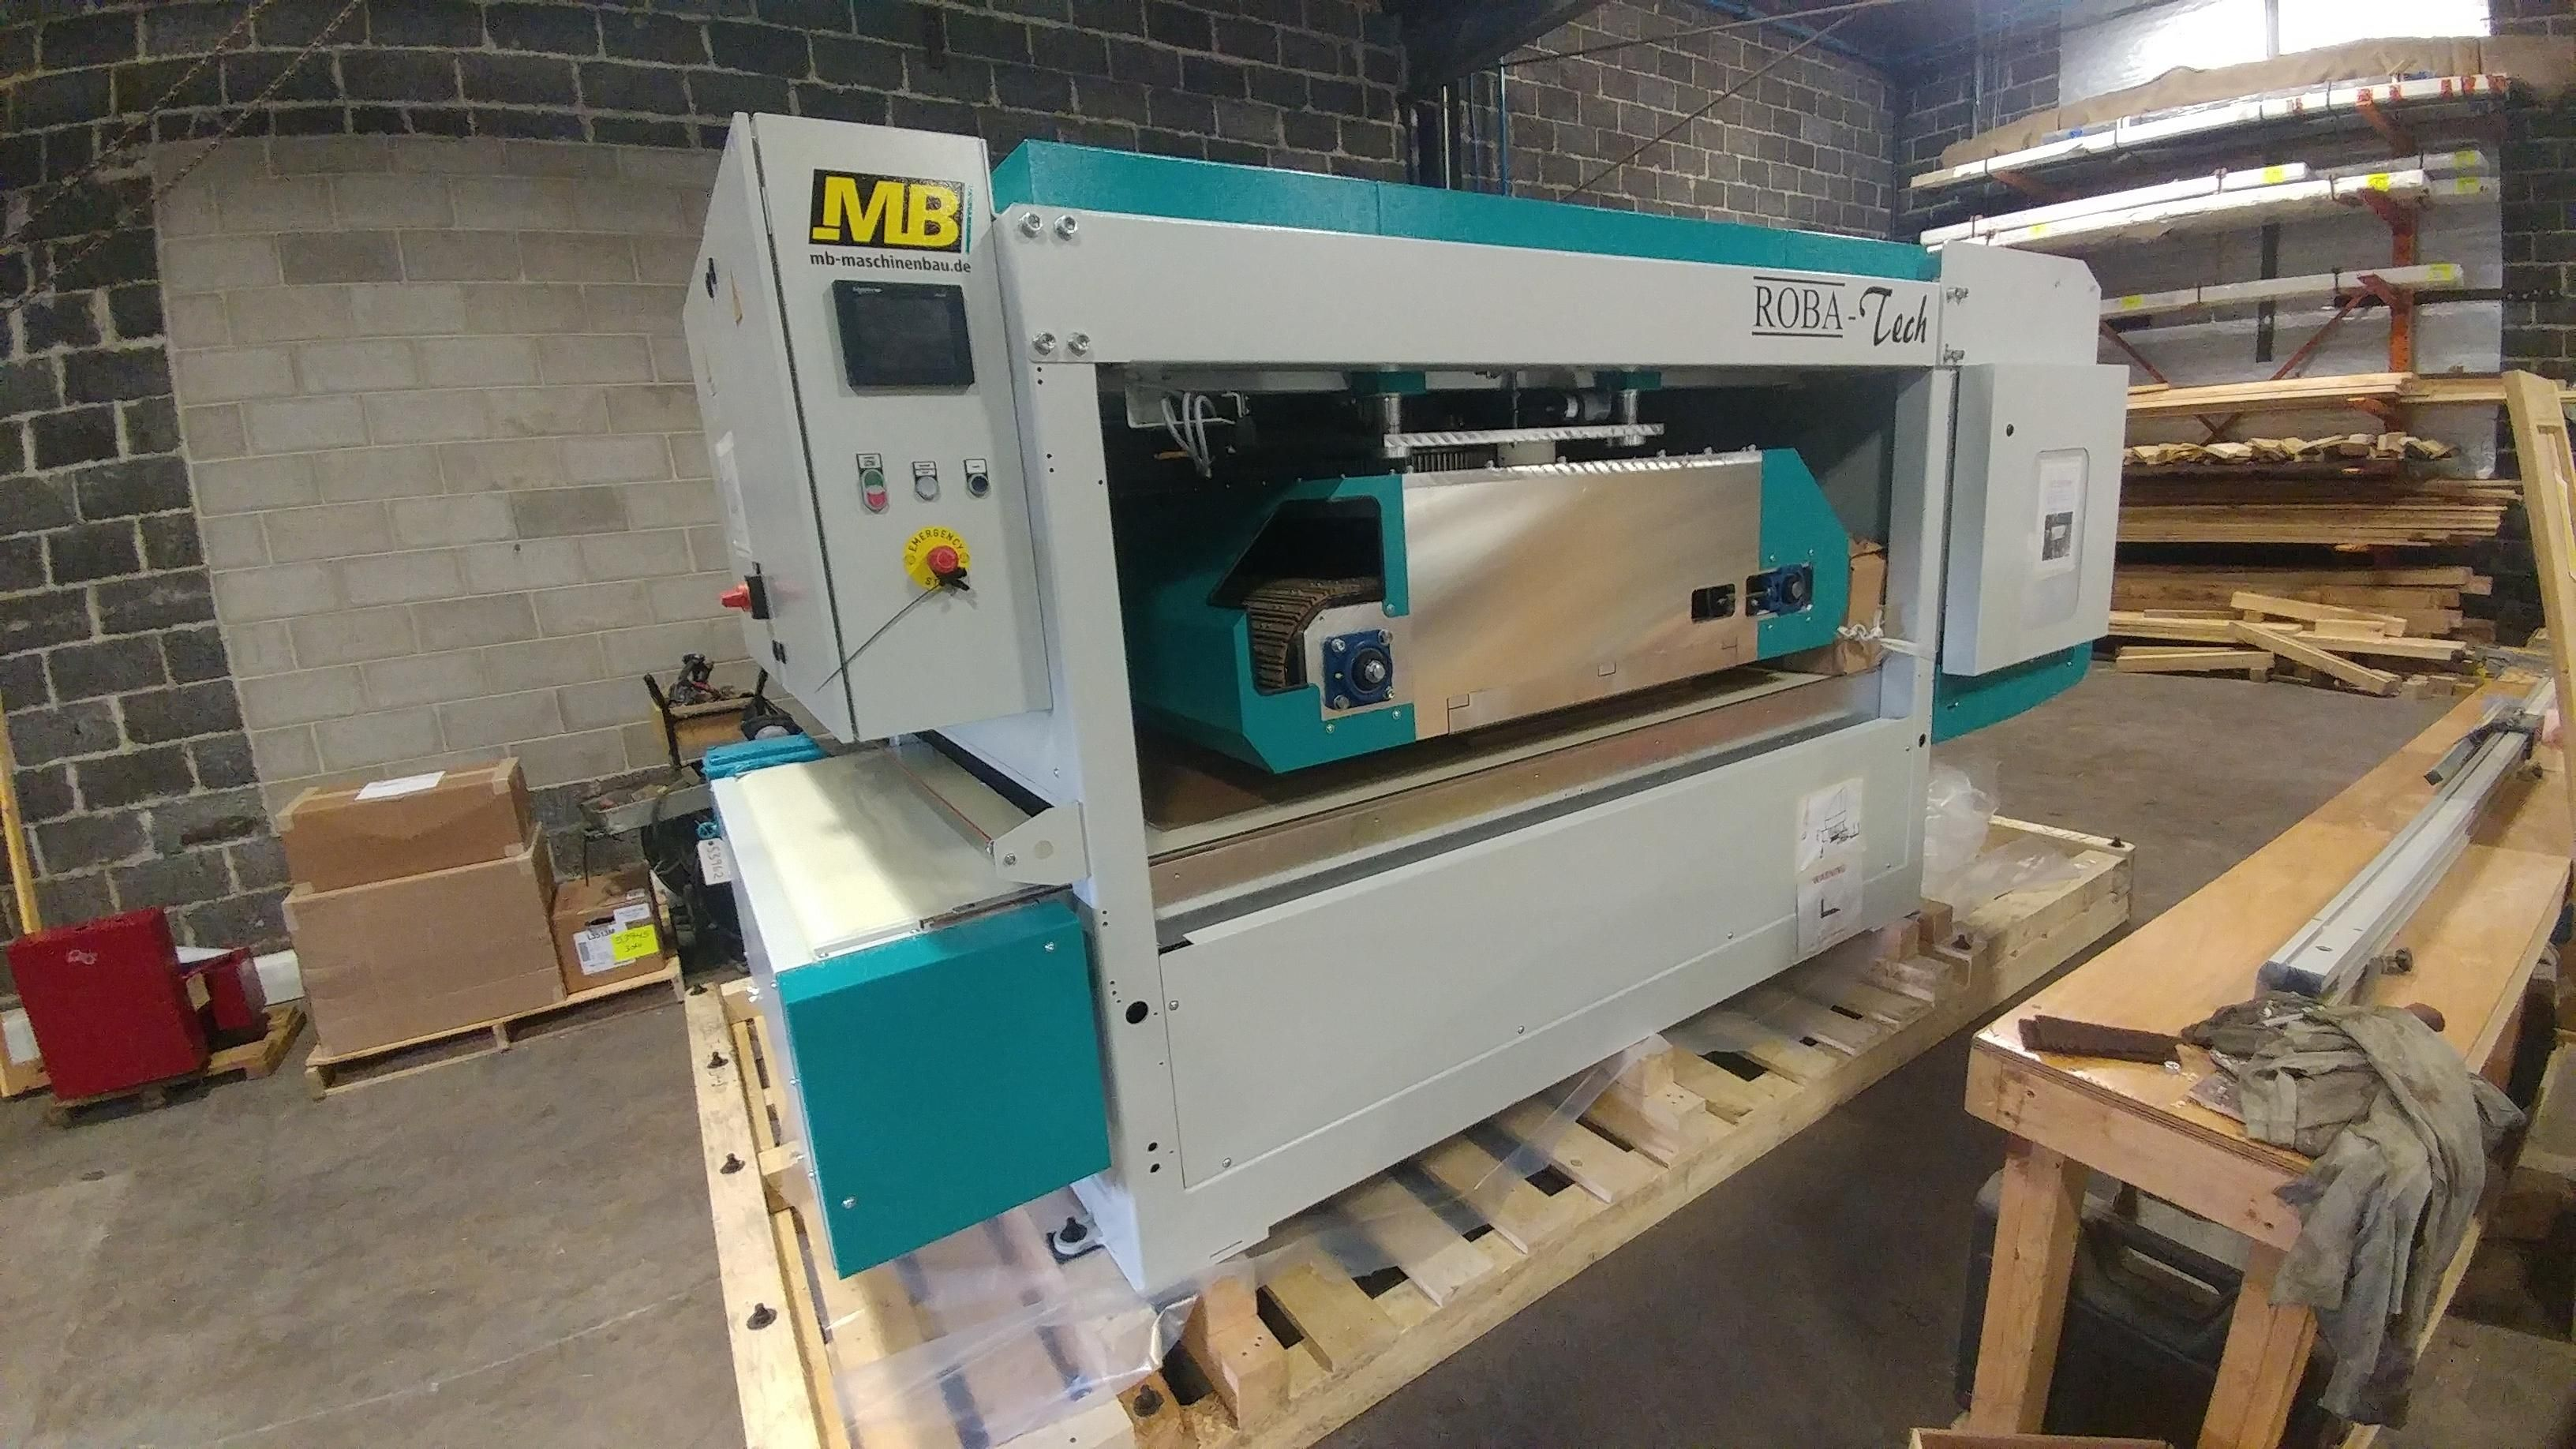 New Mb Robatech Brush Sander In Stock At Hermance Machine For Quick Delivery Mb Robatech Brushsander Sander Surfacesandin Machine Home Appliances Sanders